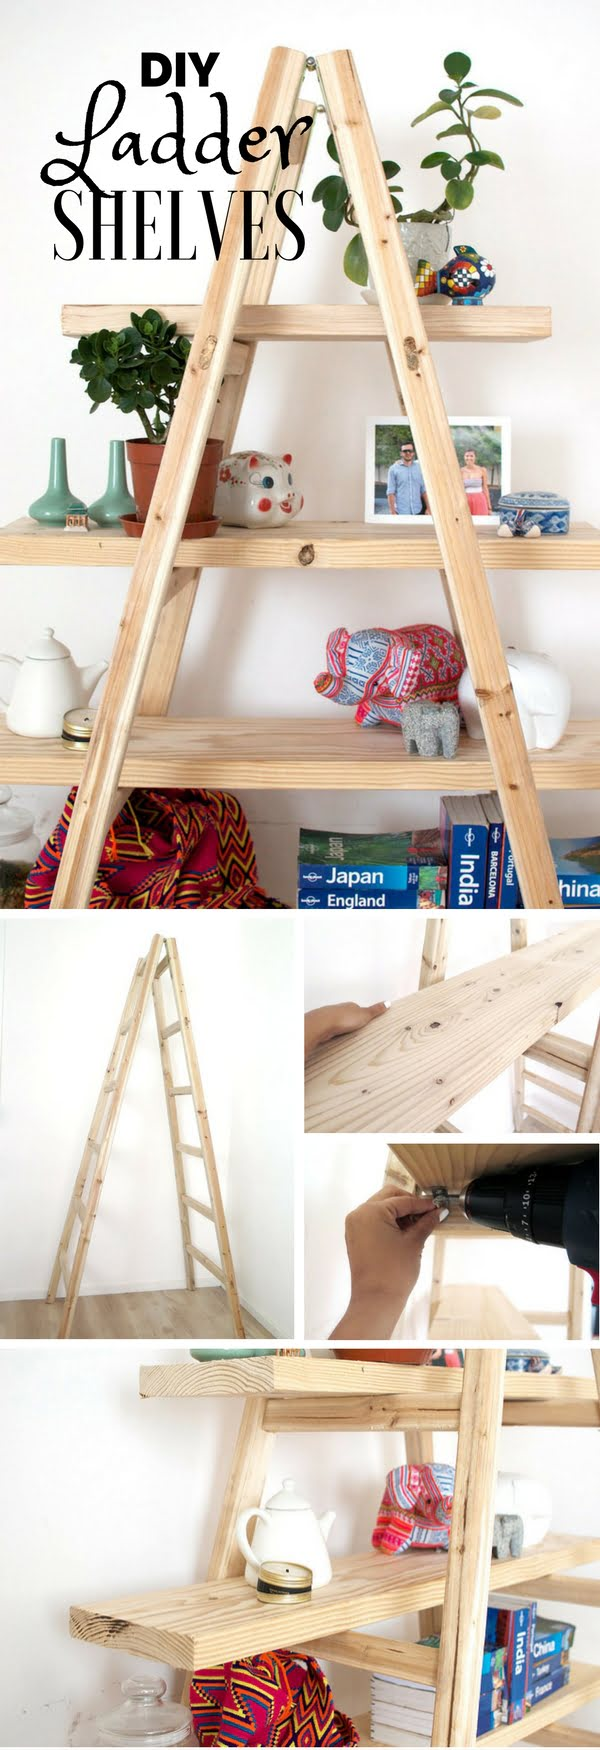 Check out the tutorial: #DIY Ladder Shelves